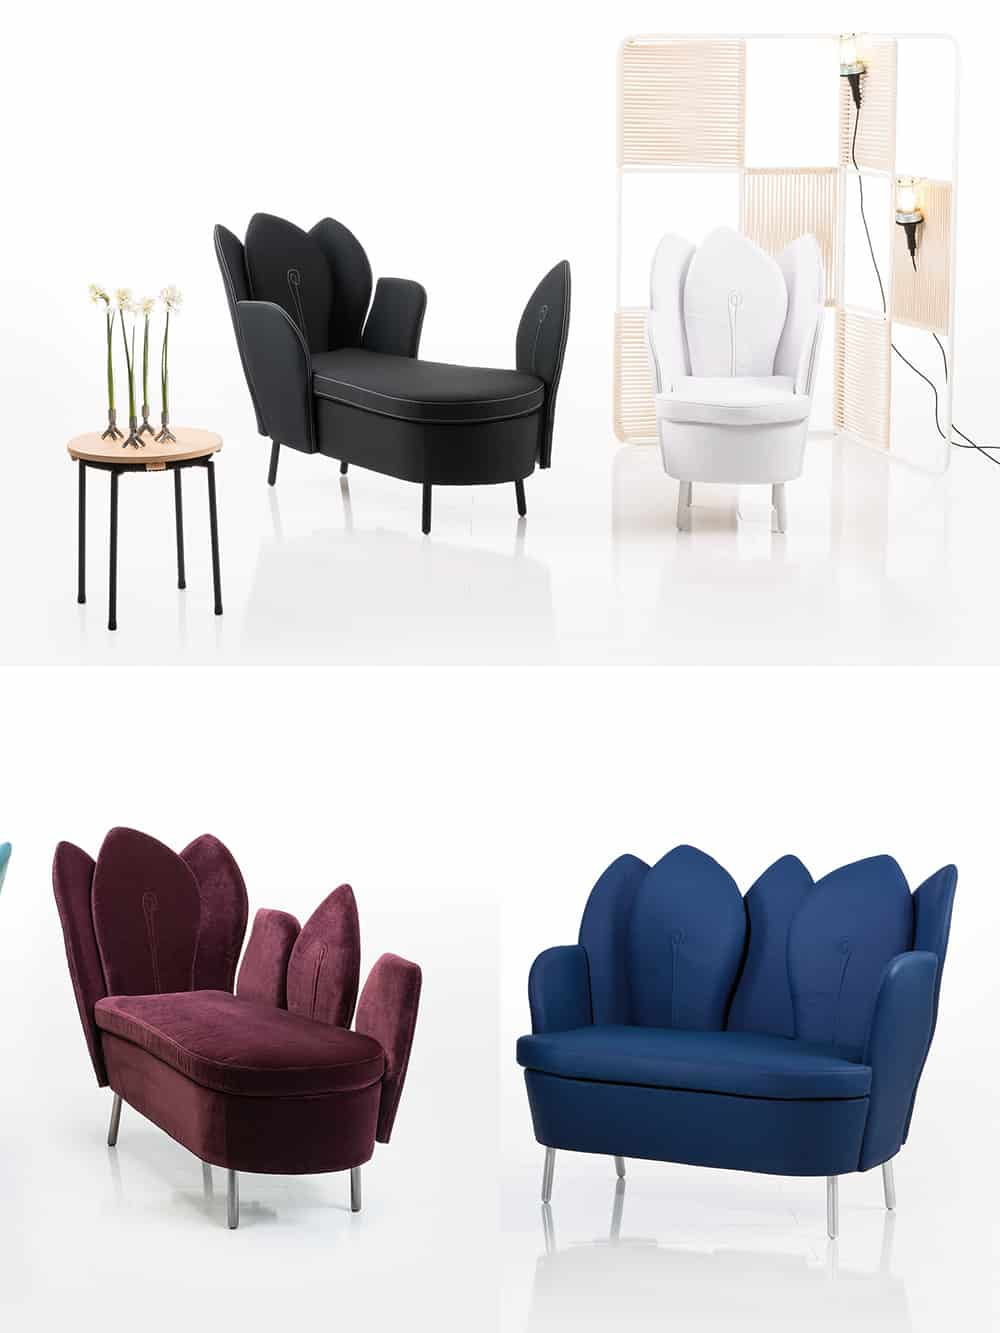 Furniture trends 2018 photos tendencies and combinations for Chair new design